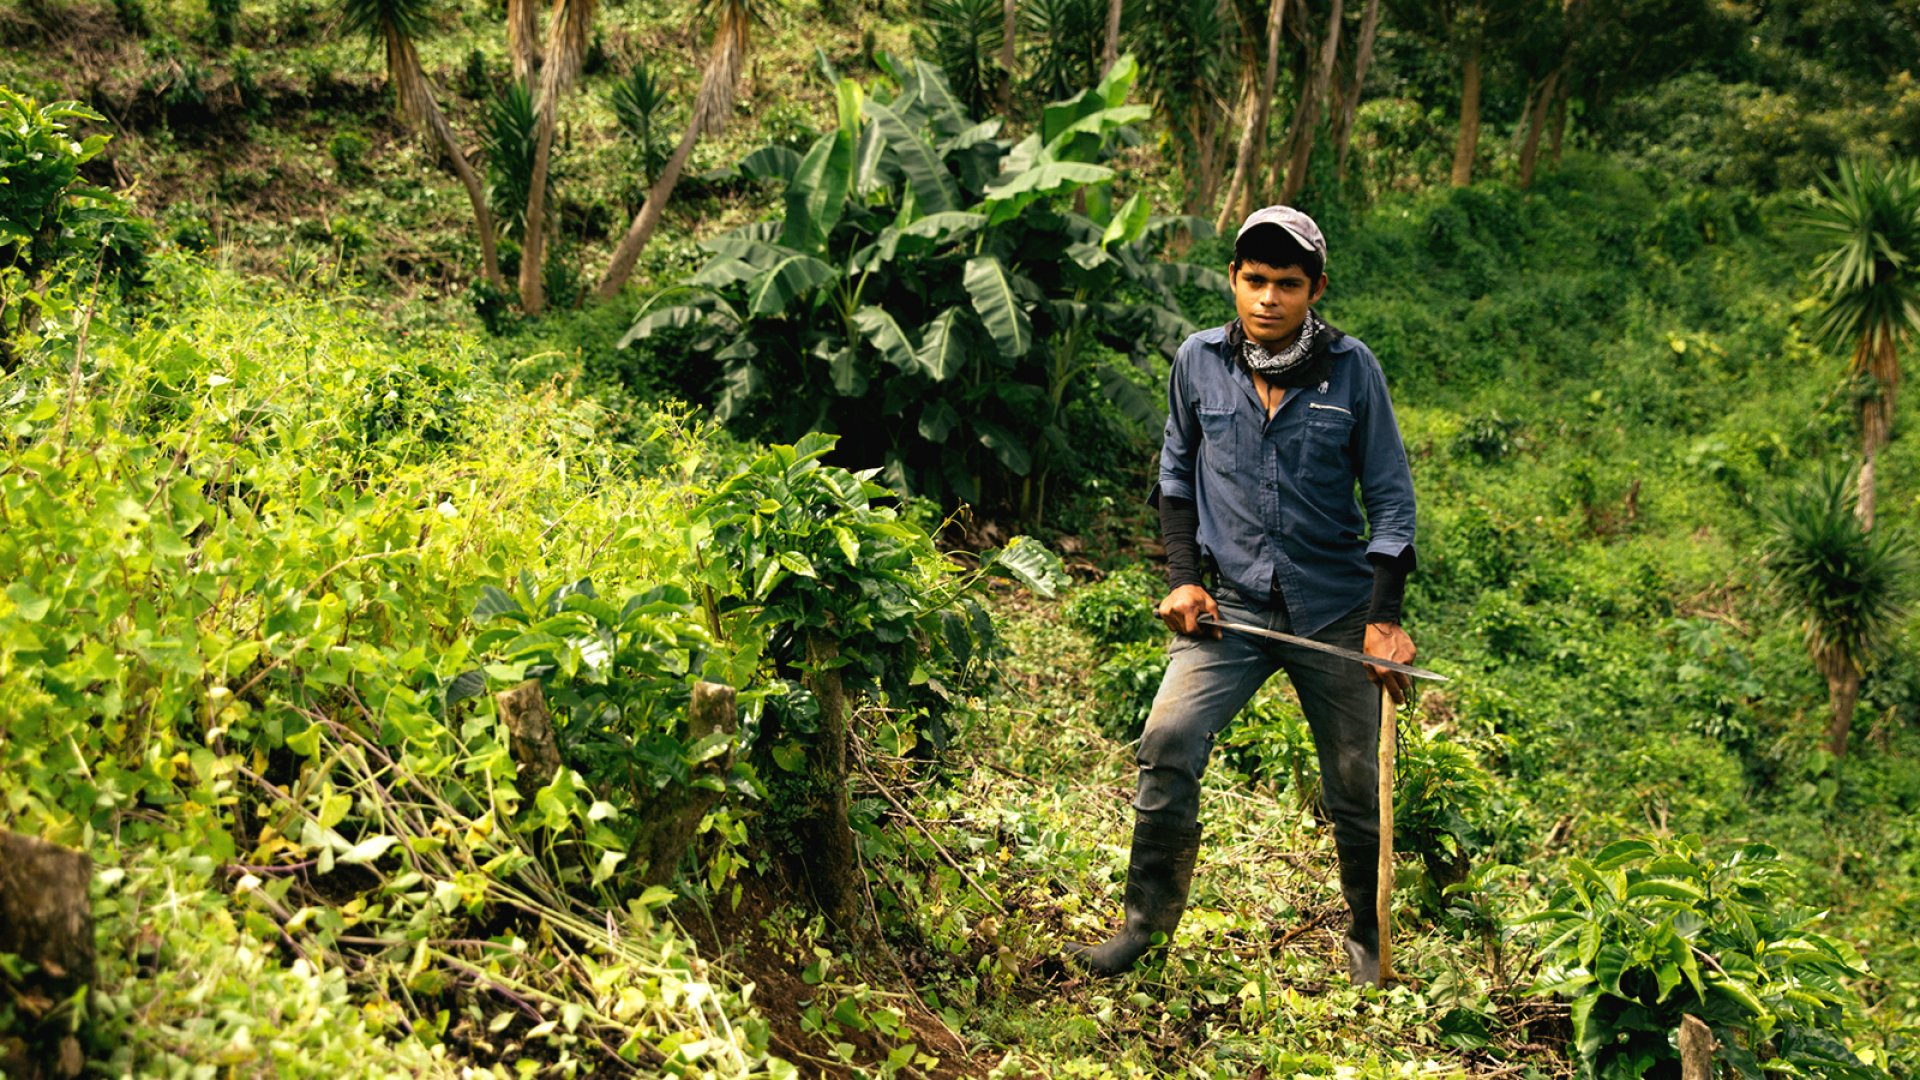 Farmer Franklin Garbanzo Ceciliano stands in a coffee field in Costa Rica. Thrive Farmers provides growers with a greater portion of coffee sales through a revenue-sharing model.